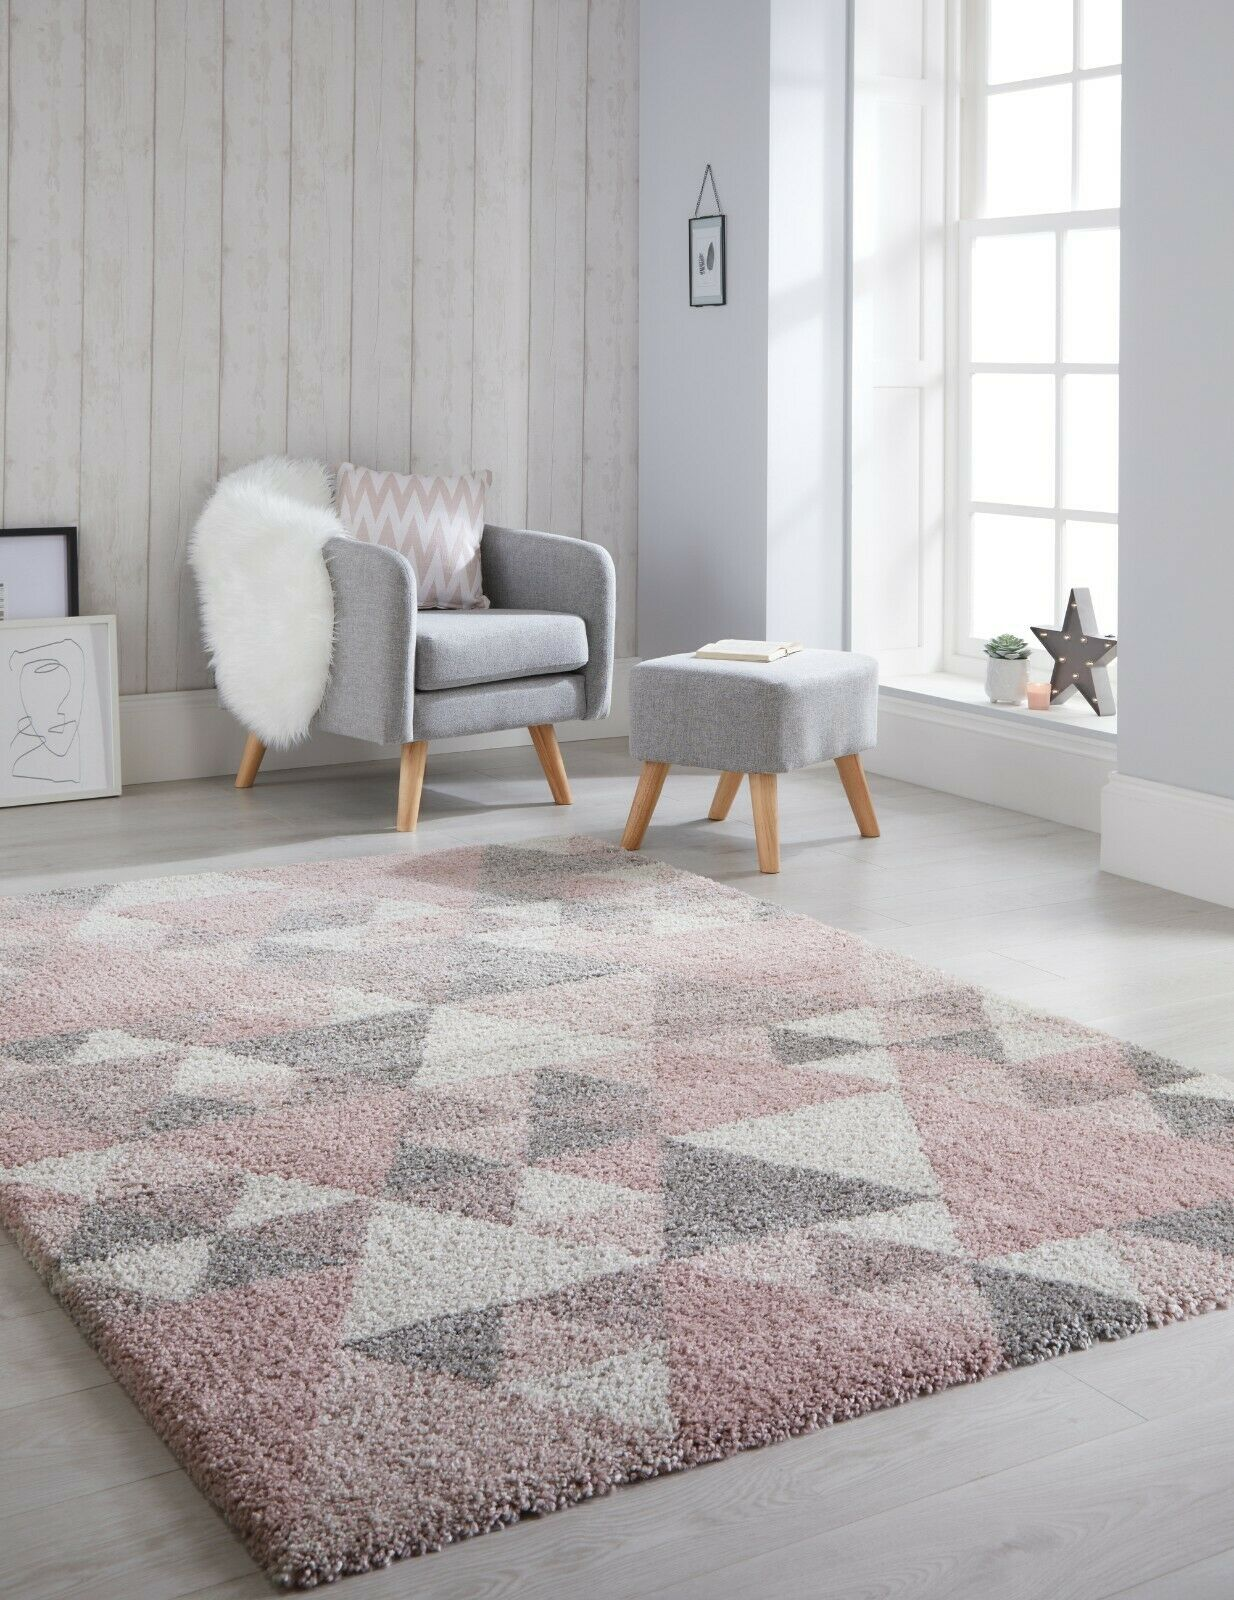 Shaggy Pastel Rugs Small Large Trendy Thick Pile Modern Carpet Soft Fluffy Rugs